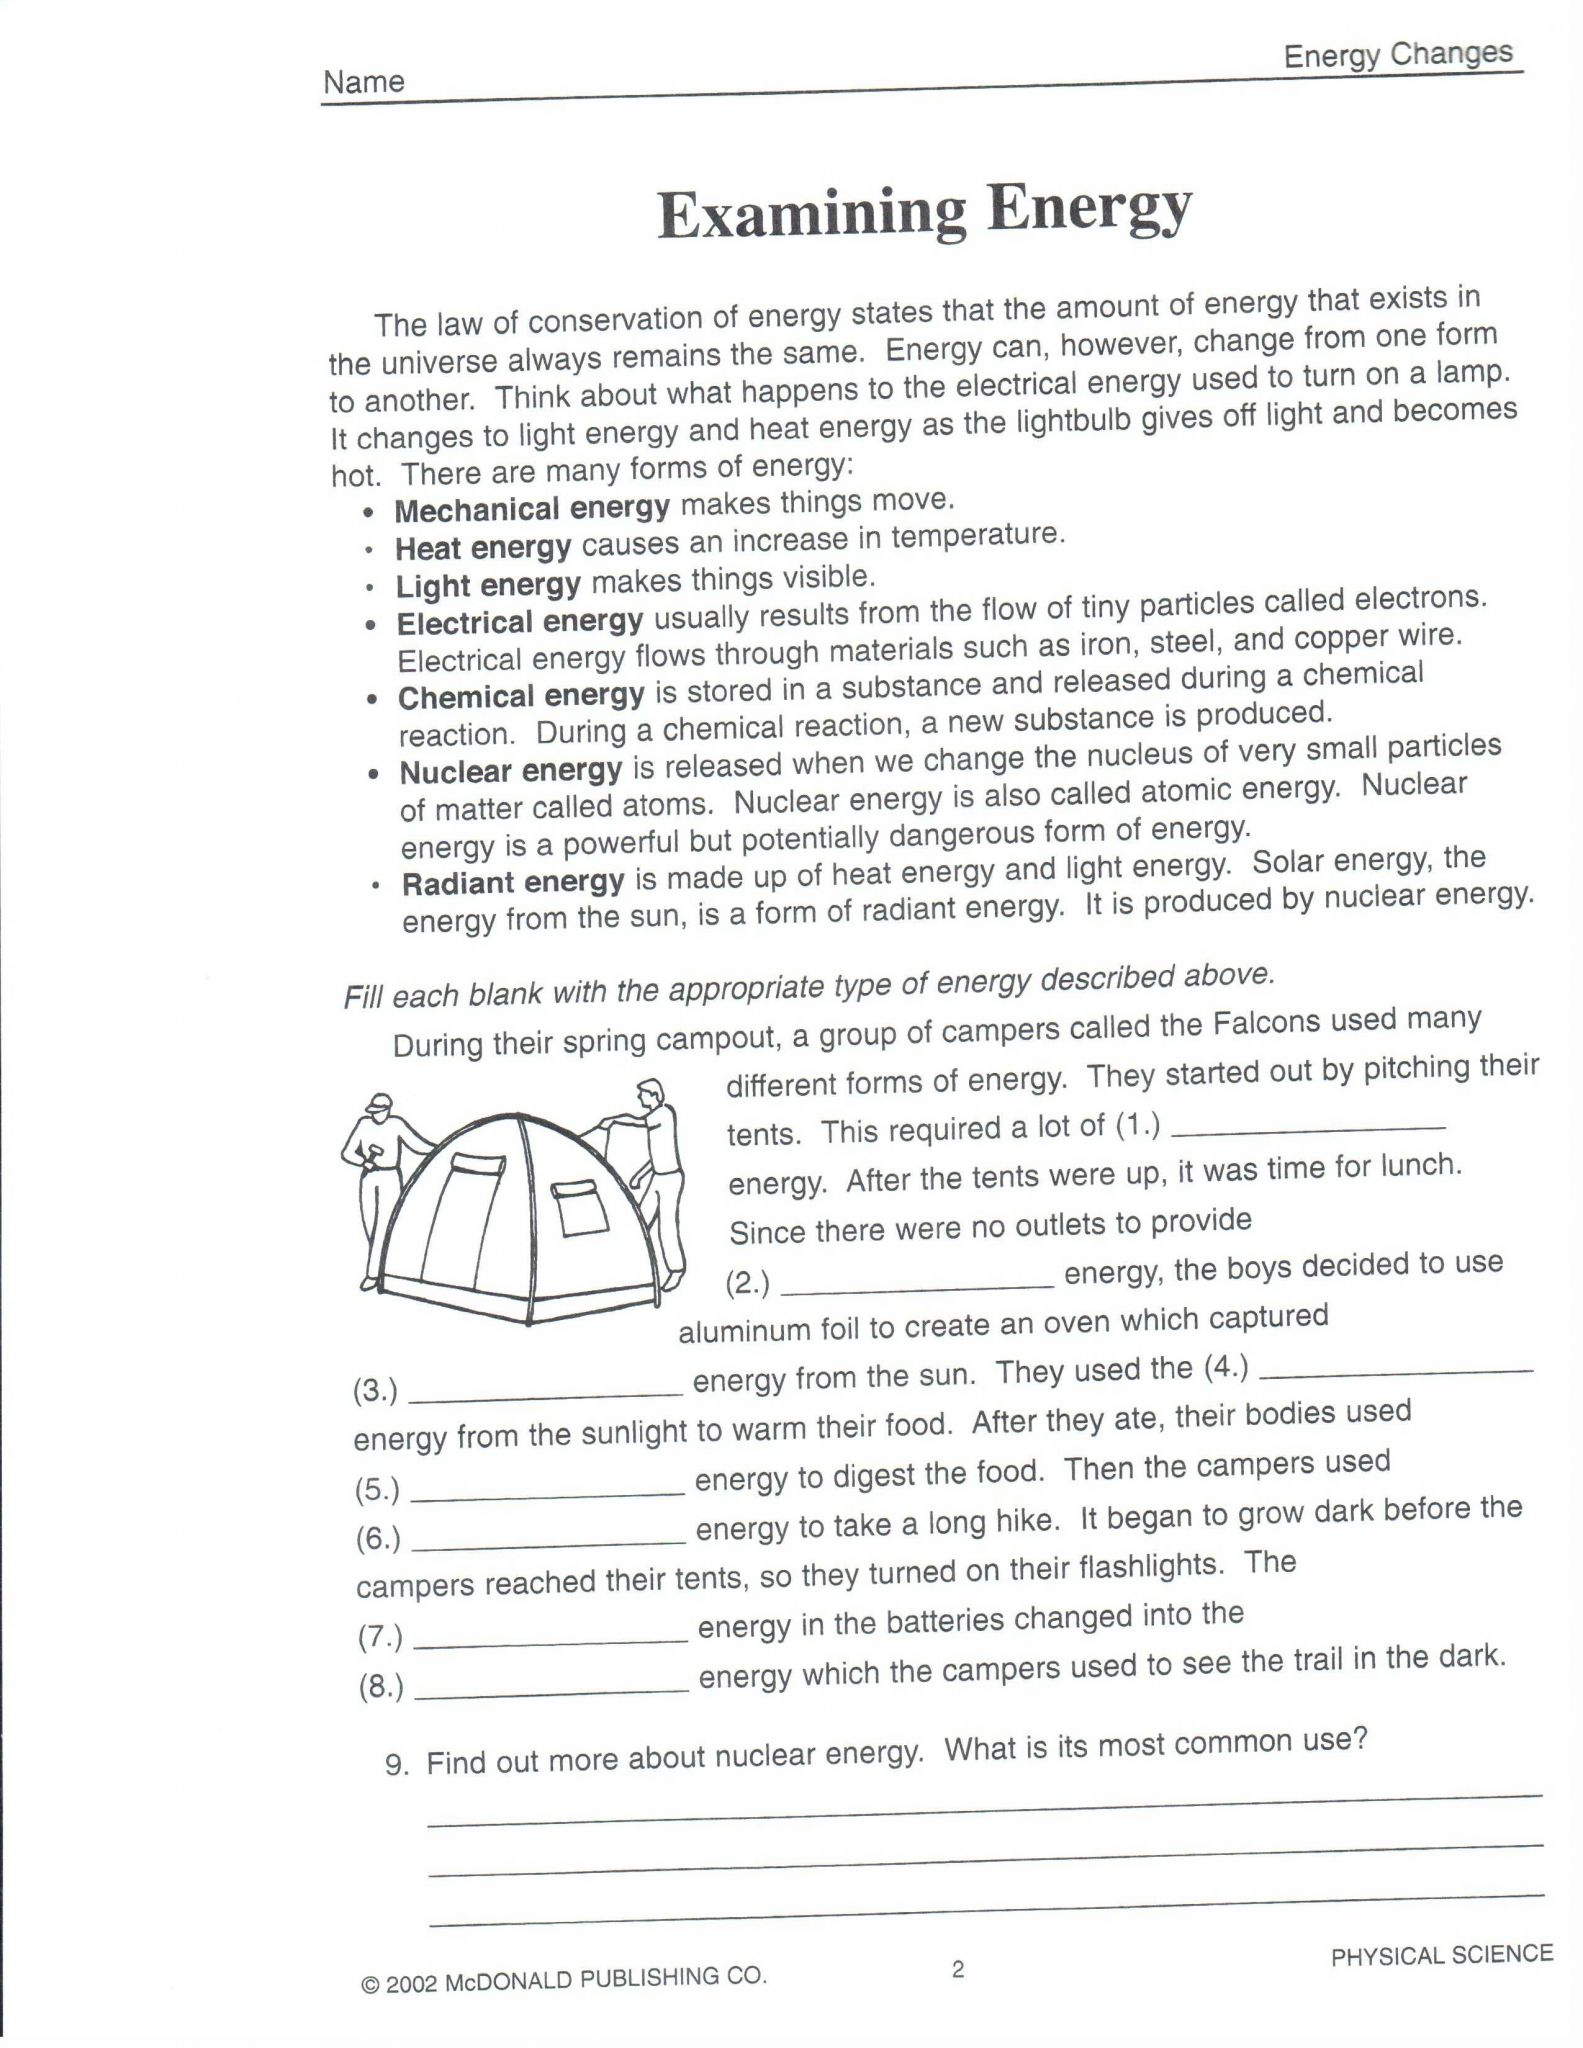 7th Grade Common Core Math Worksheets With Answer Key